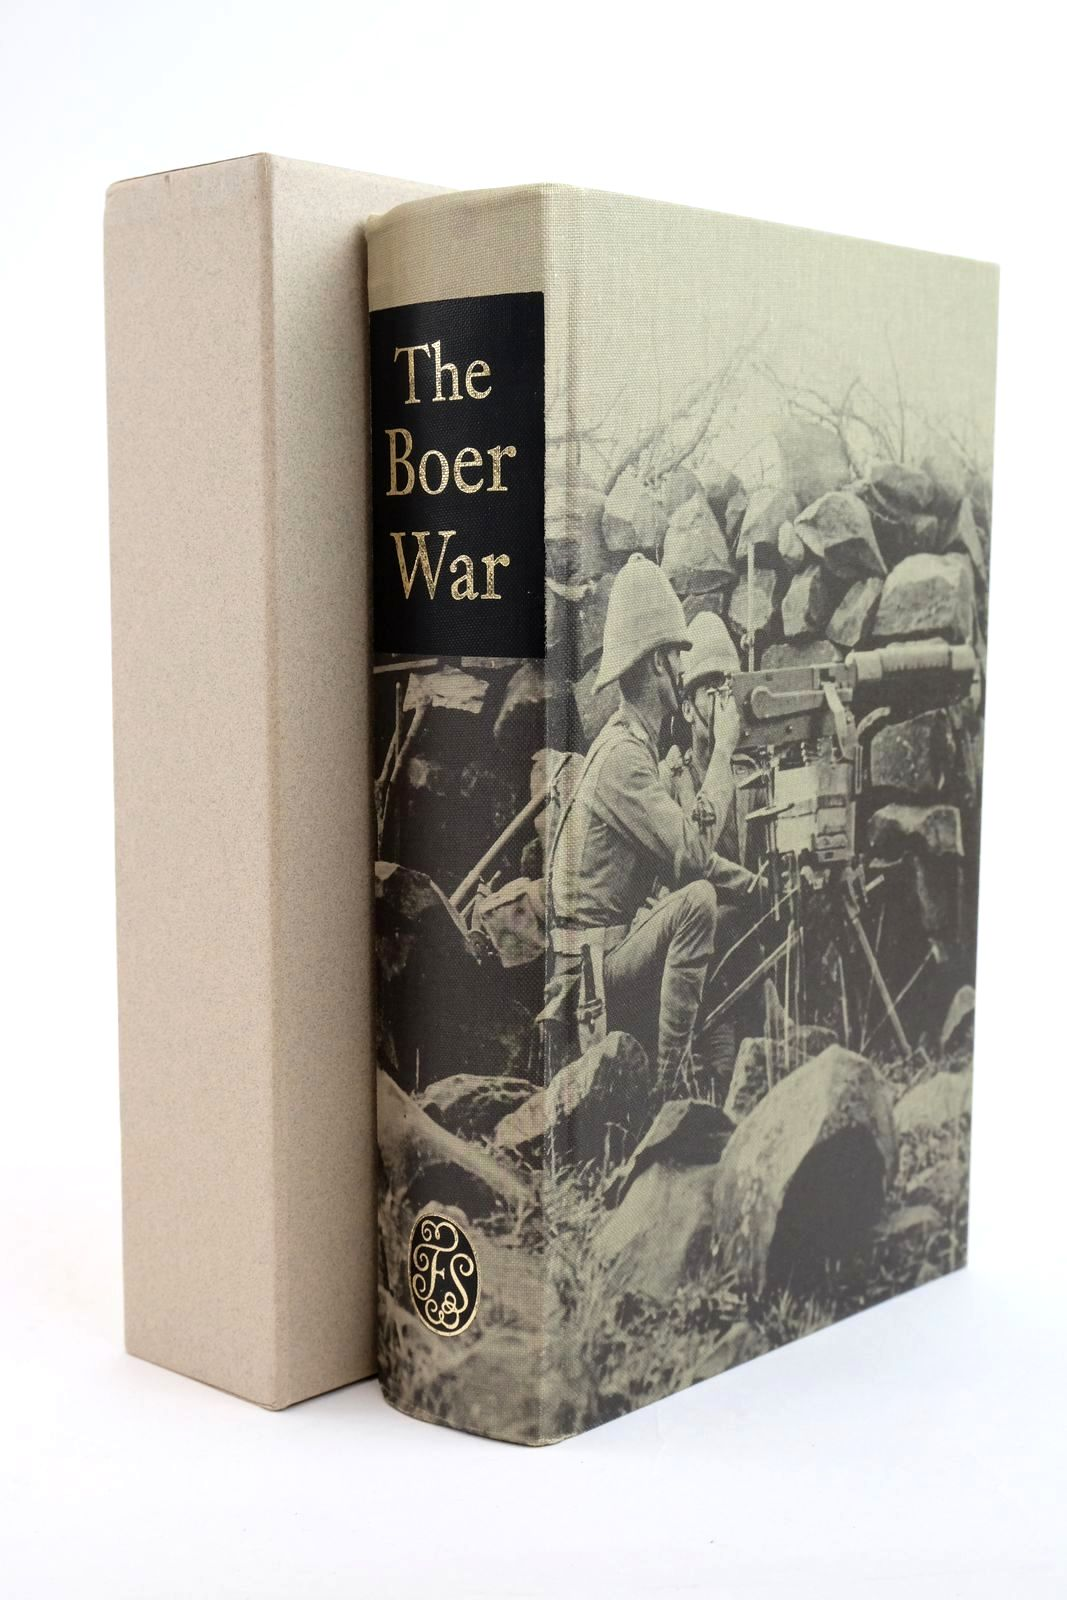 Photo of THE BOER WAR written by Pakenham, Thomas published by Folio Society (STOCK CODE: 1321365)  for sale by Stella & Rose's Books